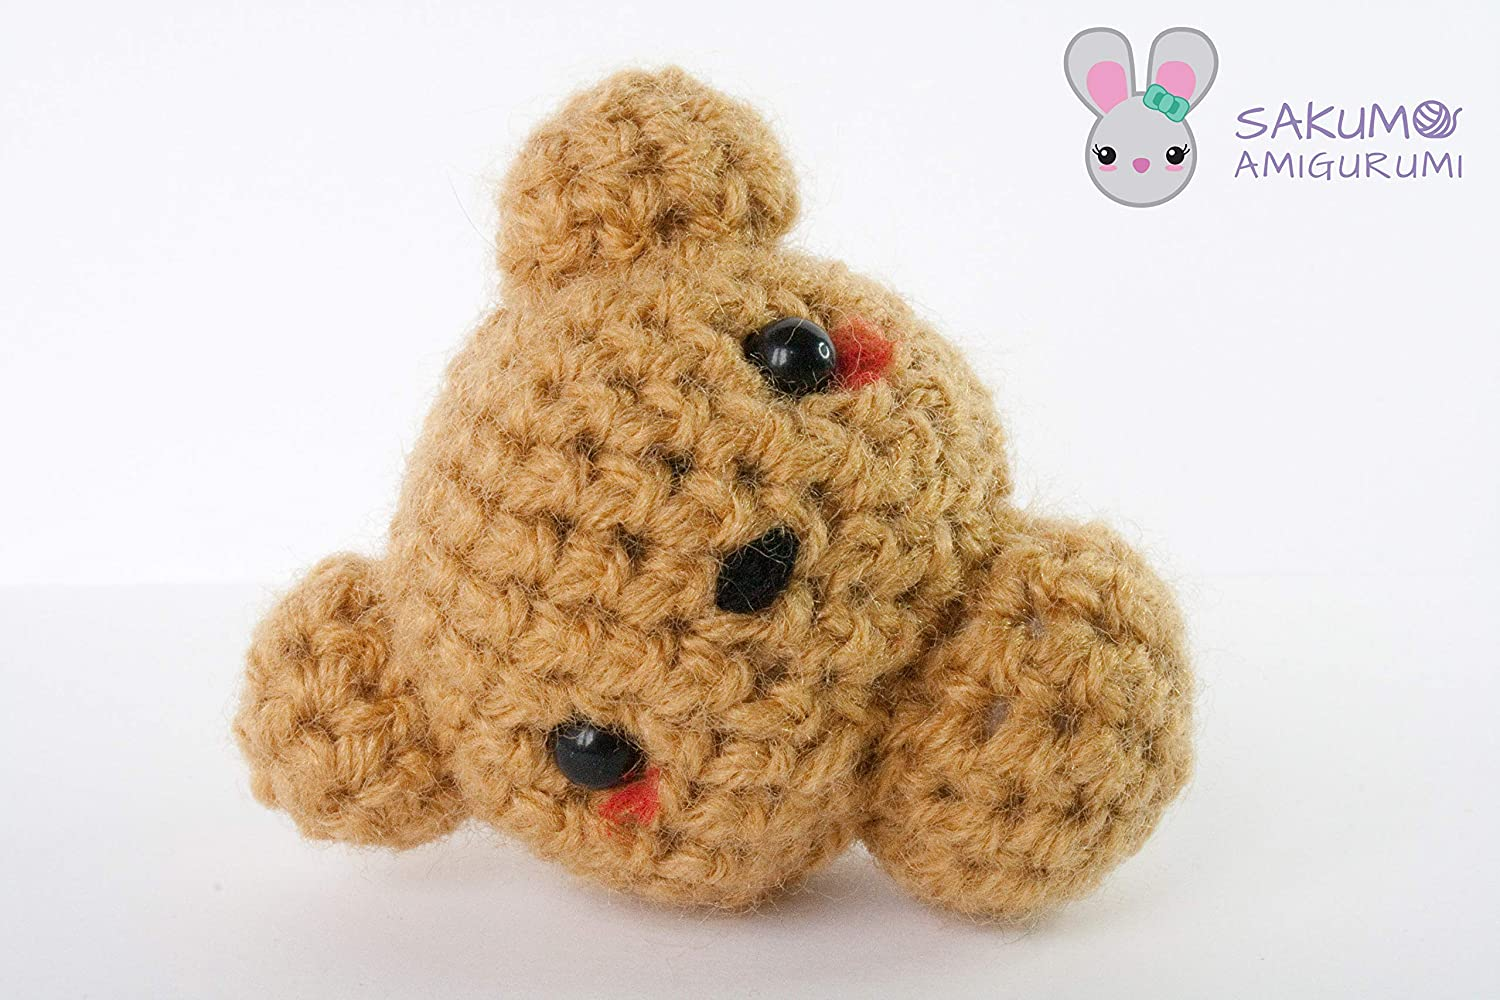 CUTE FREE PATTERN of Bear Amigurumi doll - Use it as a Bag charm ... | 1000x1500